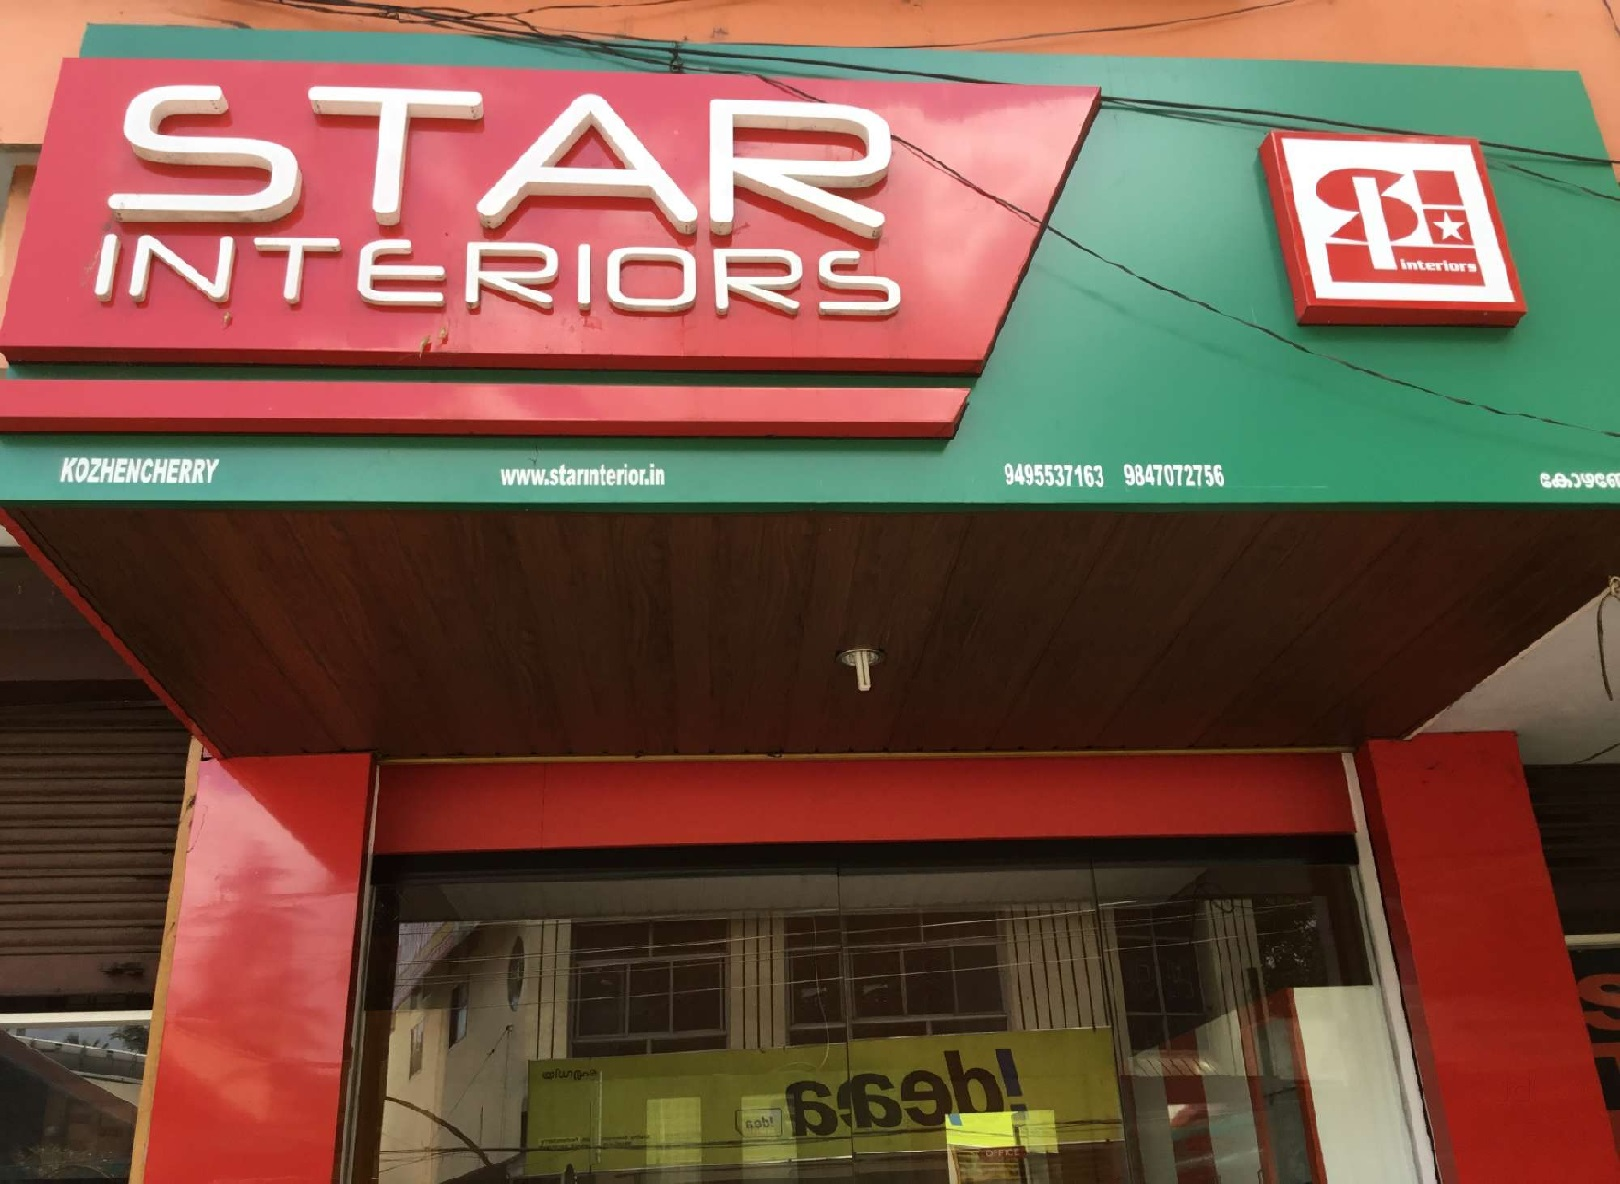 Star Interiors, INTERIORS SHOP,  service in Kozhencherry, Pathanamthitta